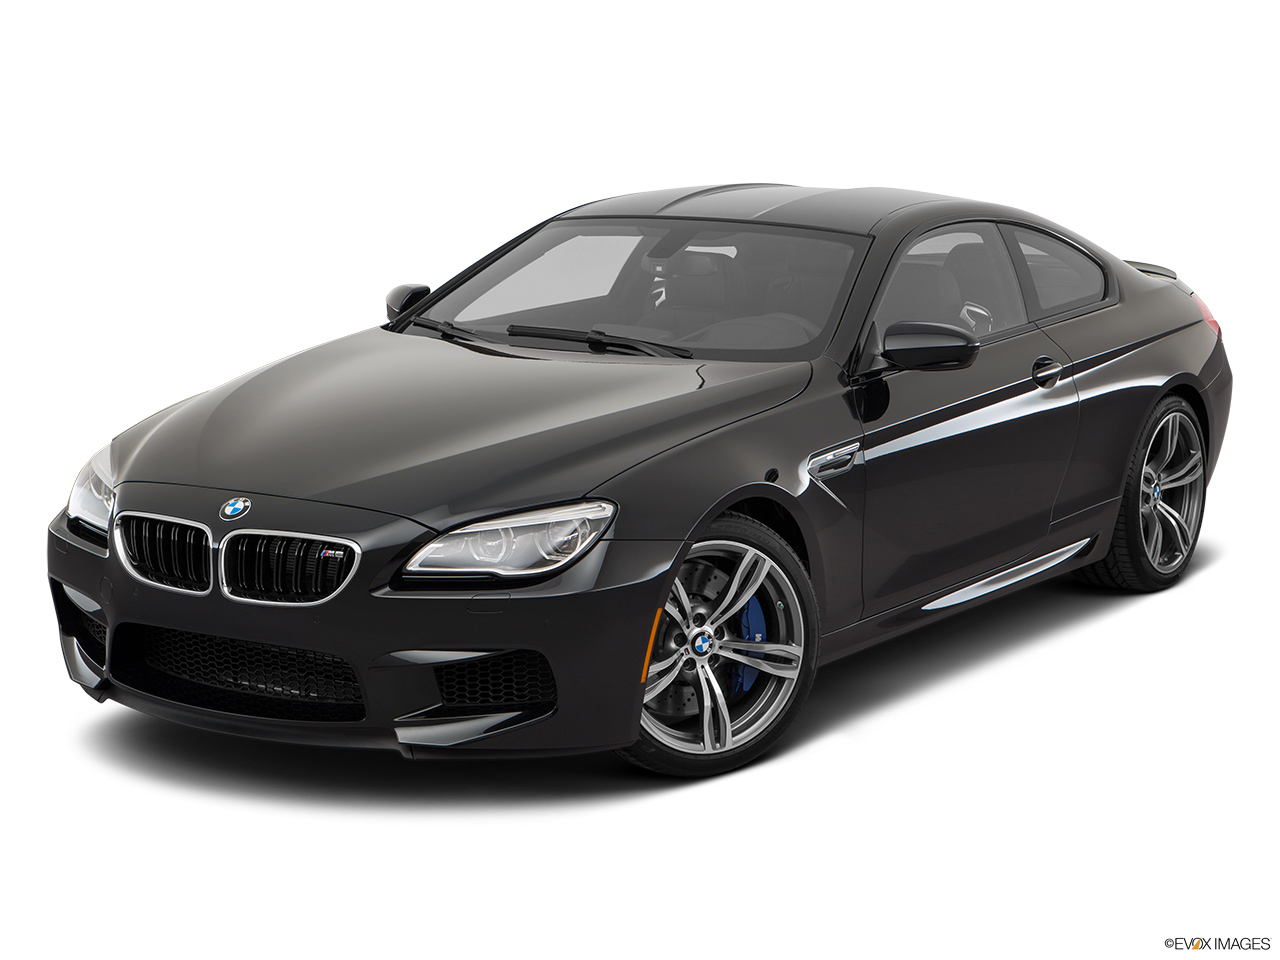 2016 bmw m6 coupe prices in qatar gulf specs reviews. Black Bedroom Furniture Sets. Home Design Ideas